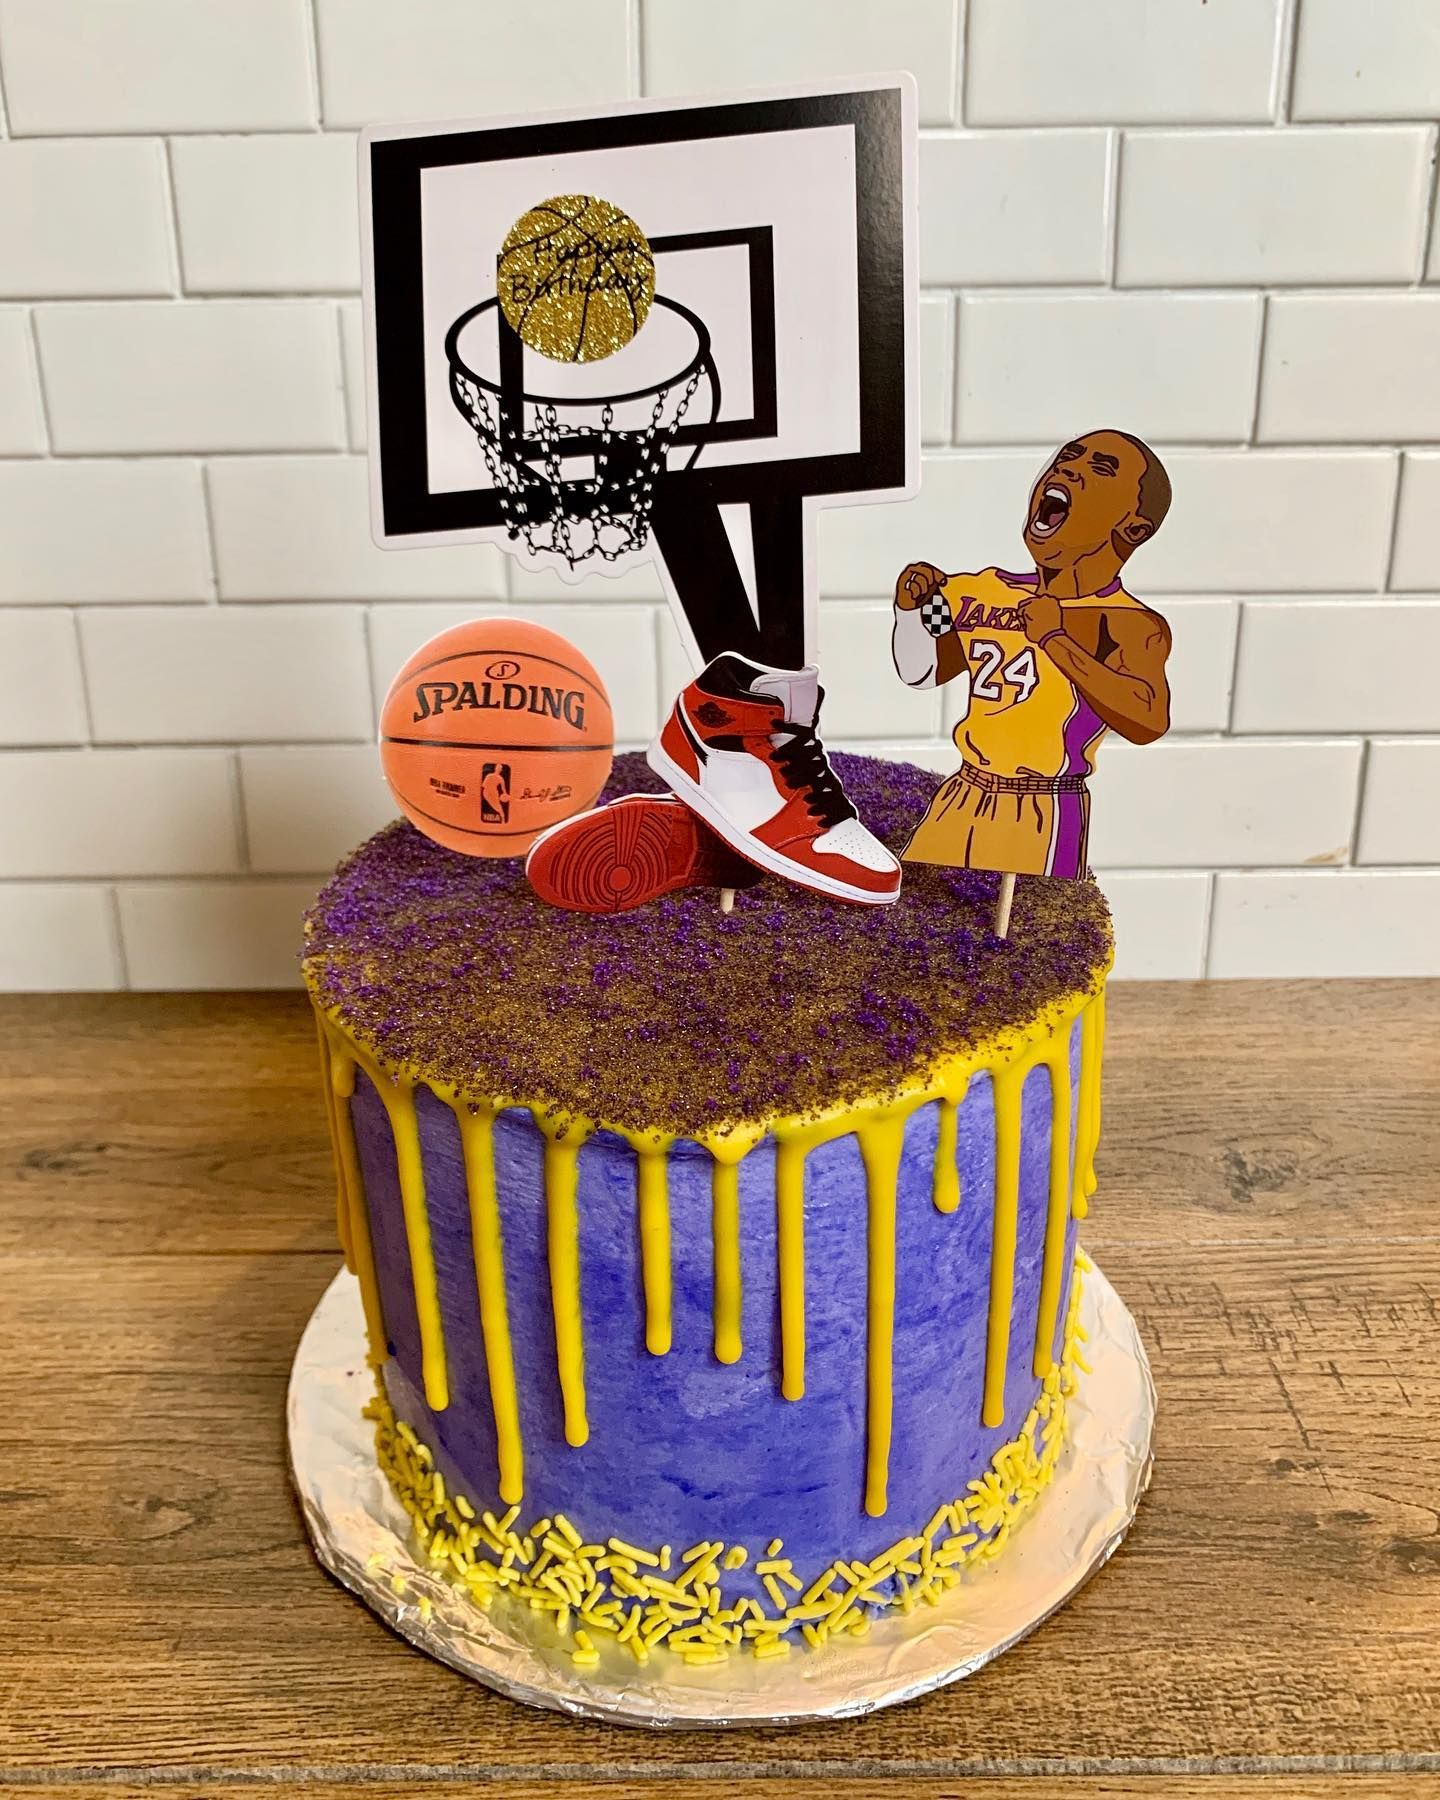 Chocolate Lakers cake 🥳 lakers kobebryant 417